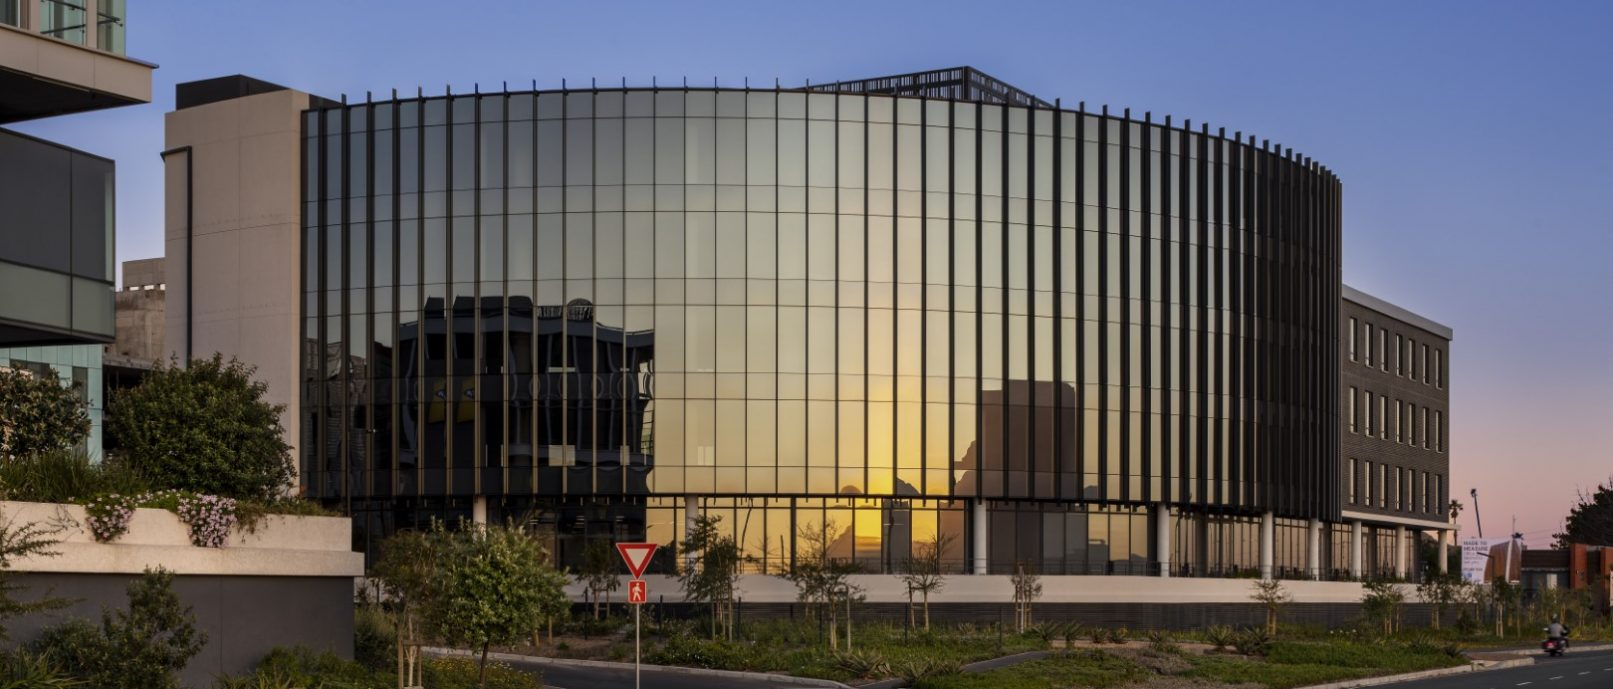 Sable Corner redefines key gateway into Century City in Cape Town